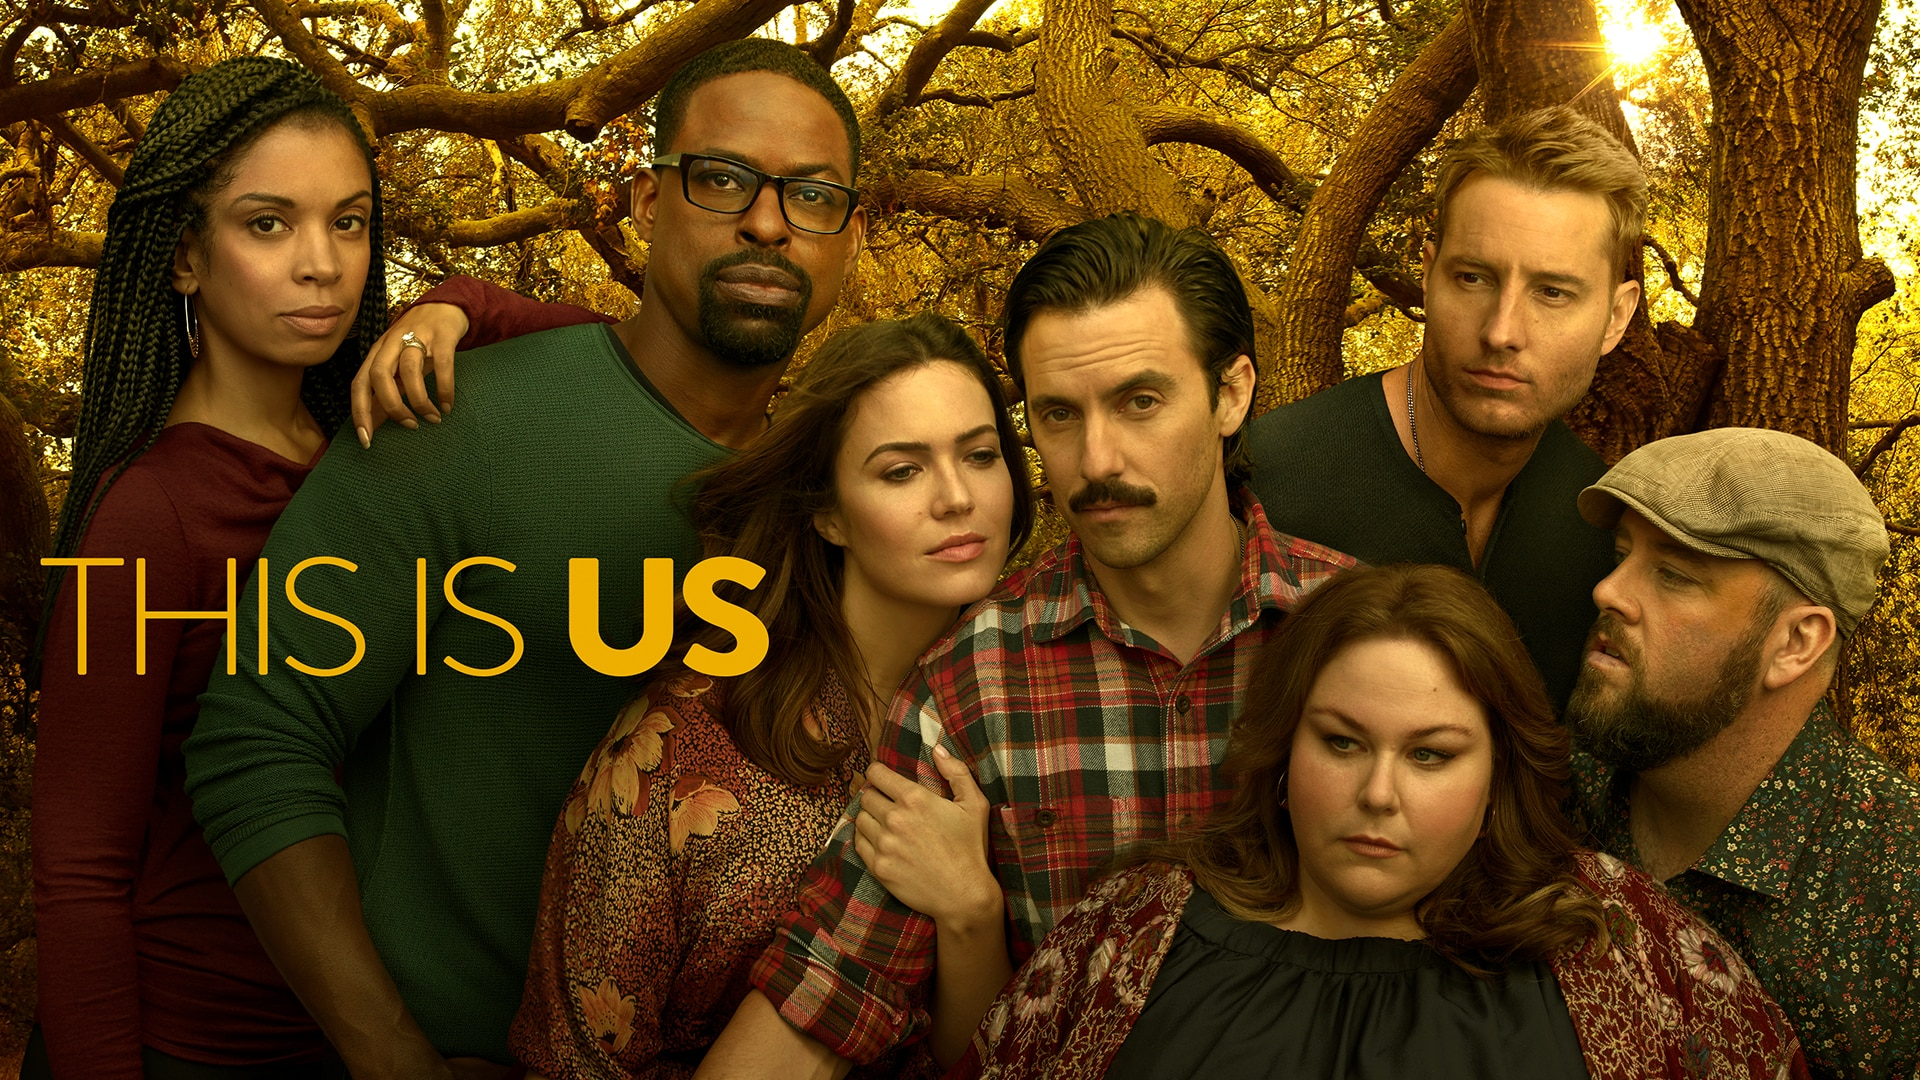 This Is Us: The Complete First Season Giveaway forecasting